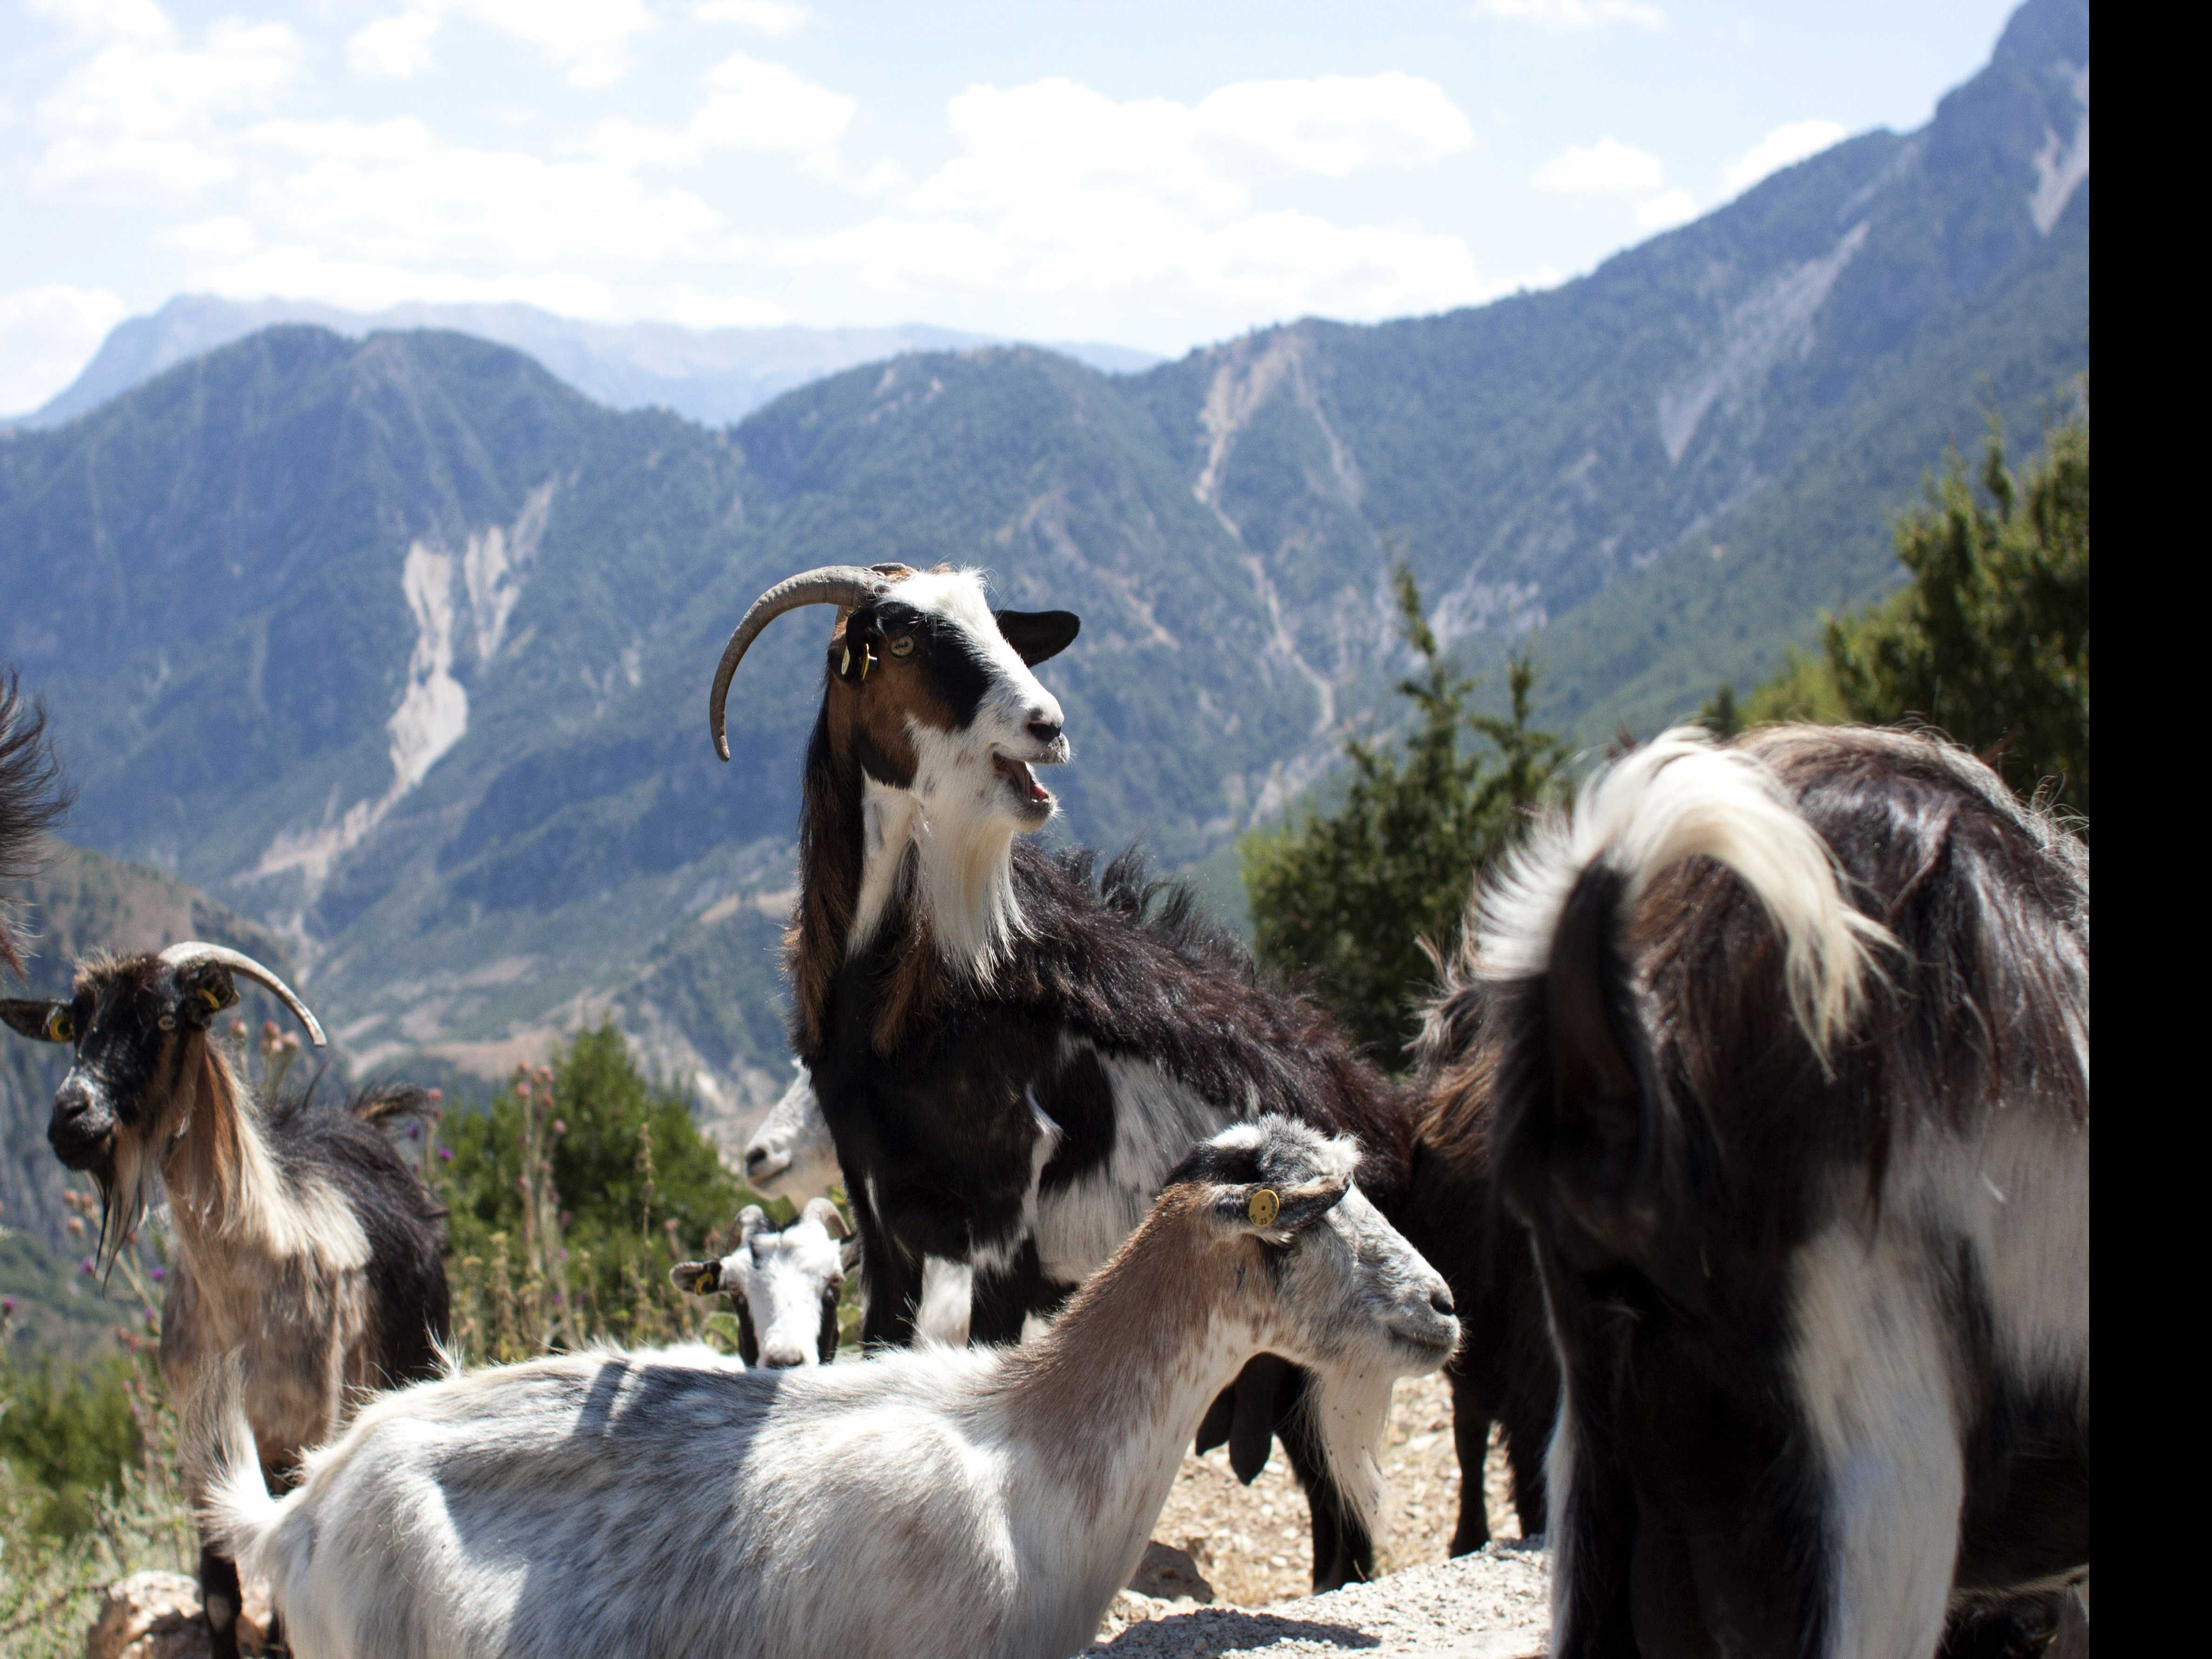 Project Aims to Attract Tourists to Remote Albanian Villages